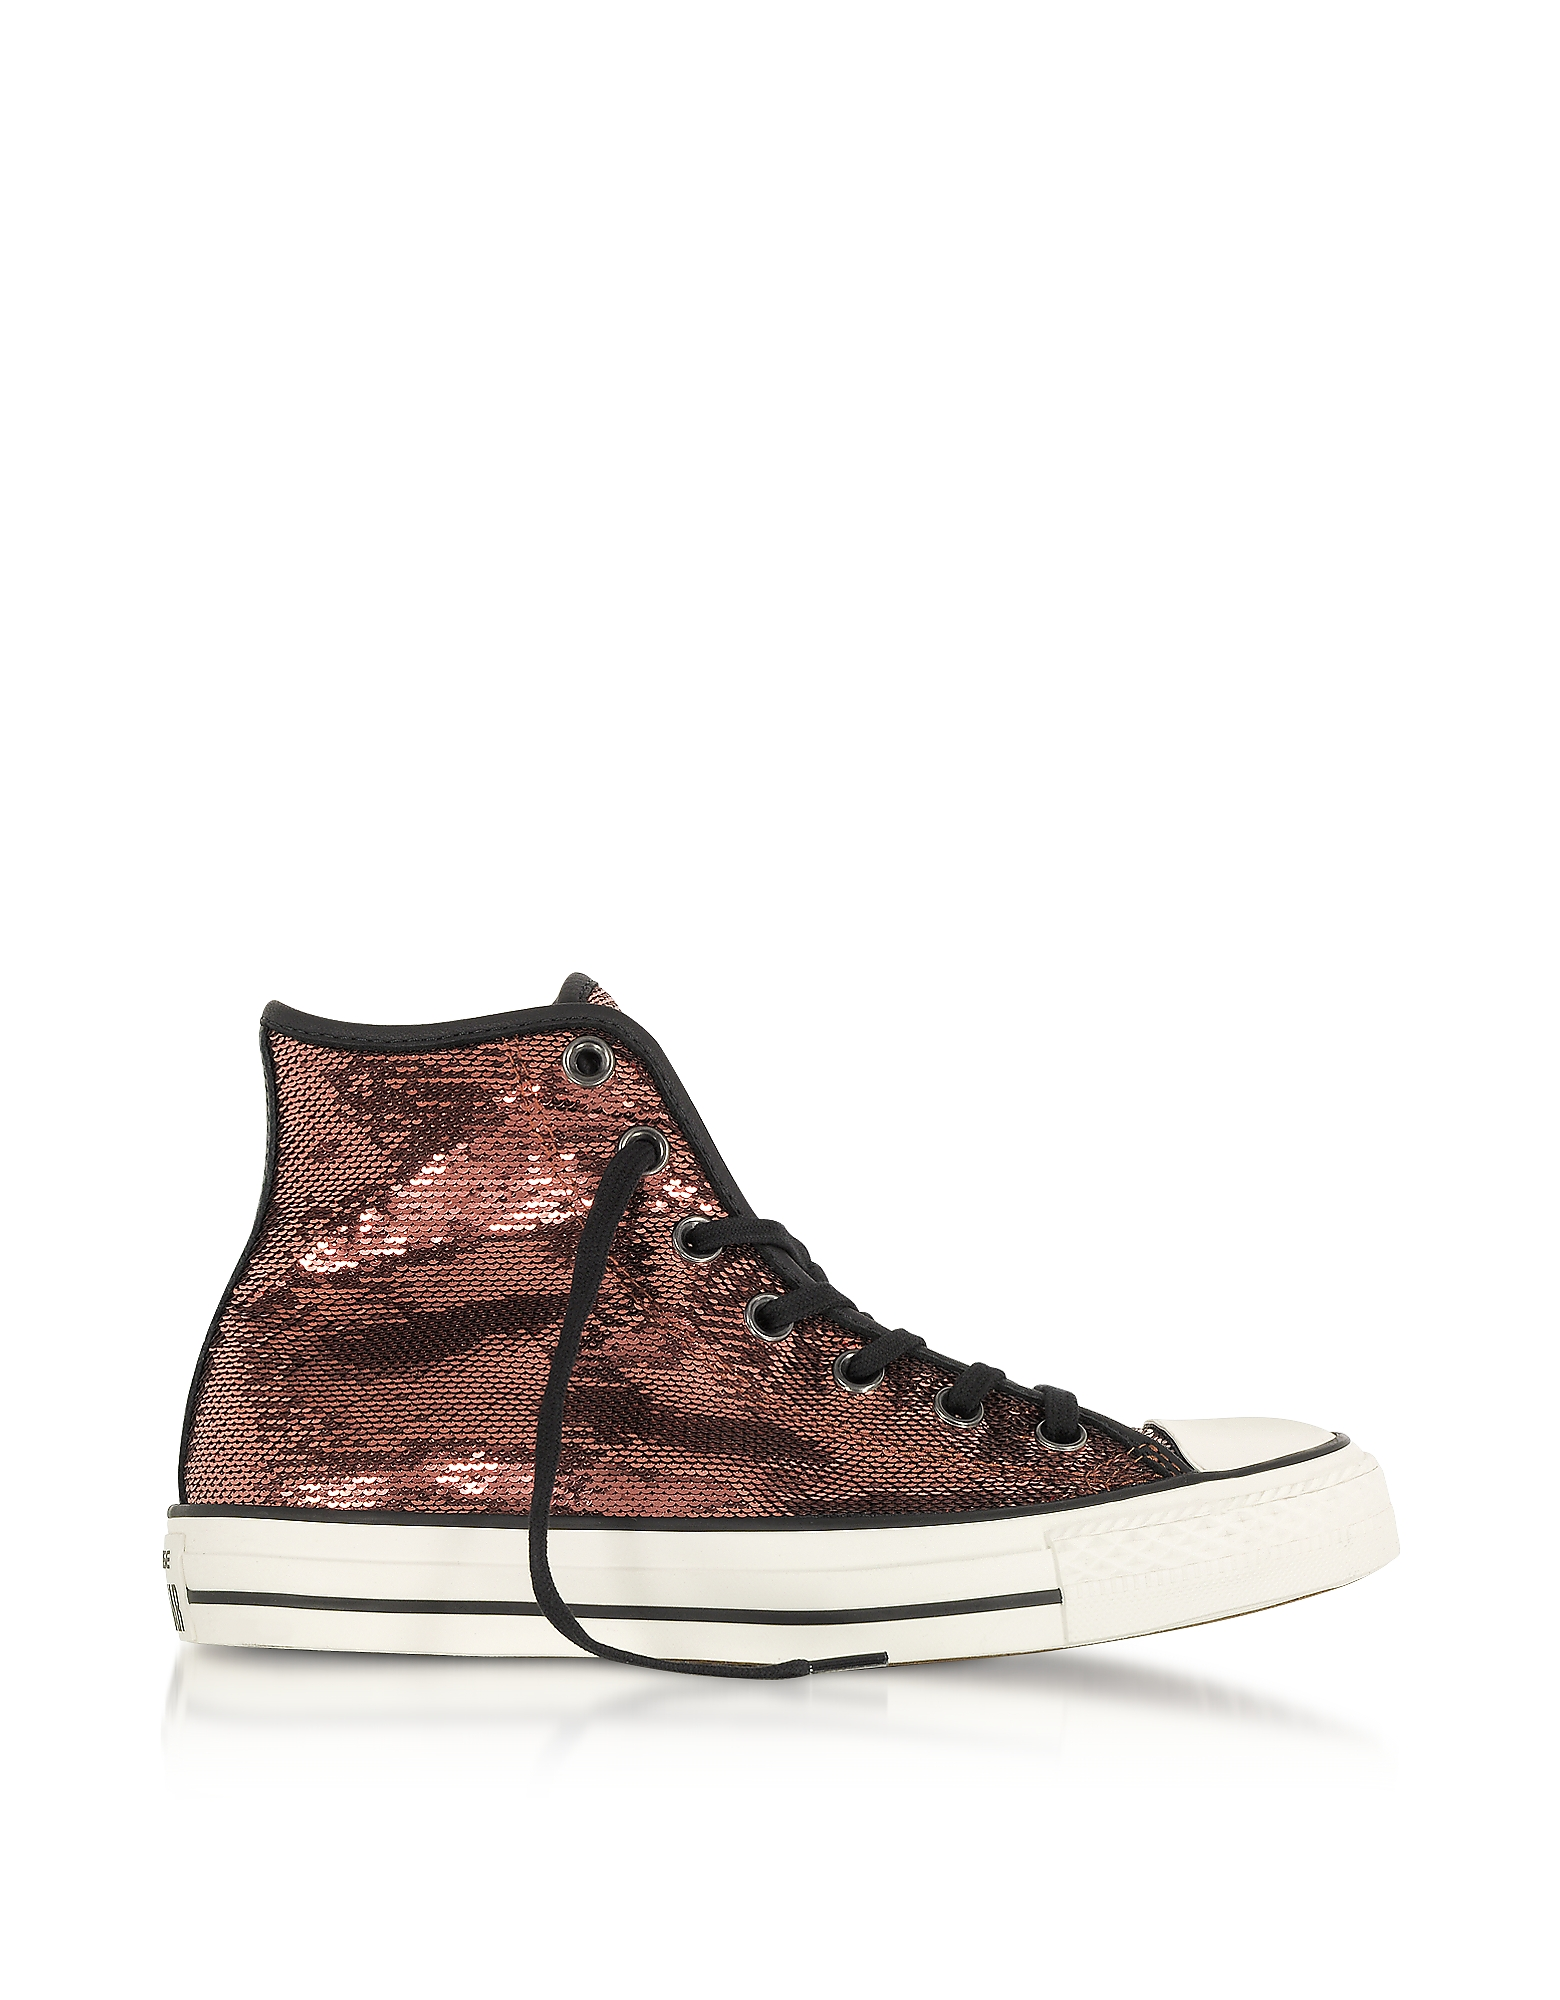 Converse Limited Edition Shoes, Chuck Taylor All Star High Distressed Ox Copper & Black Sequins Snea